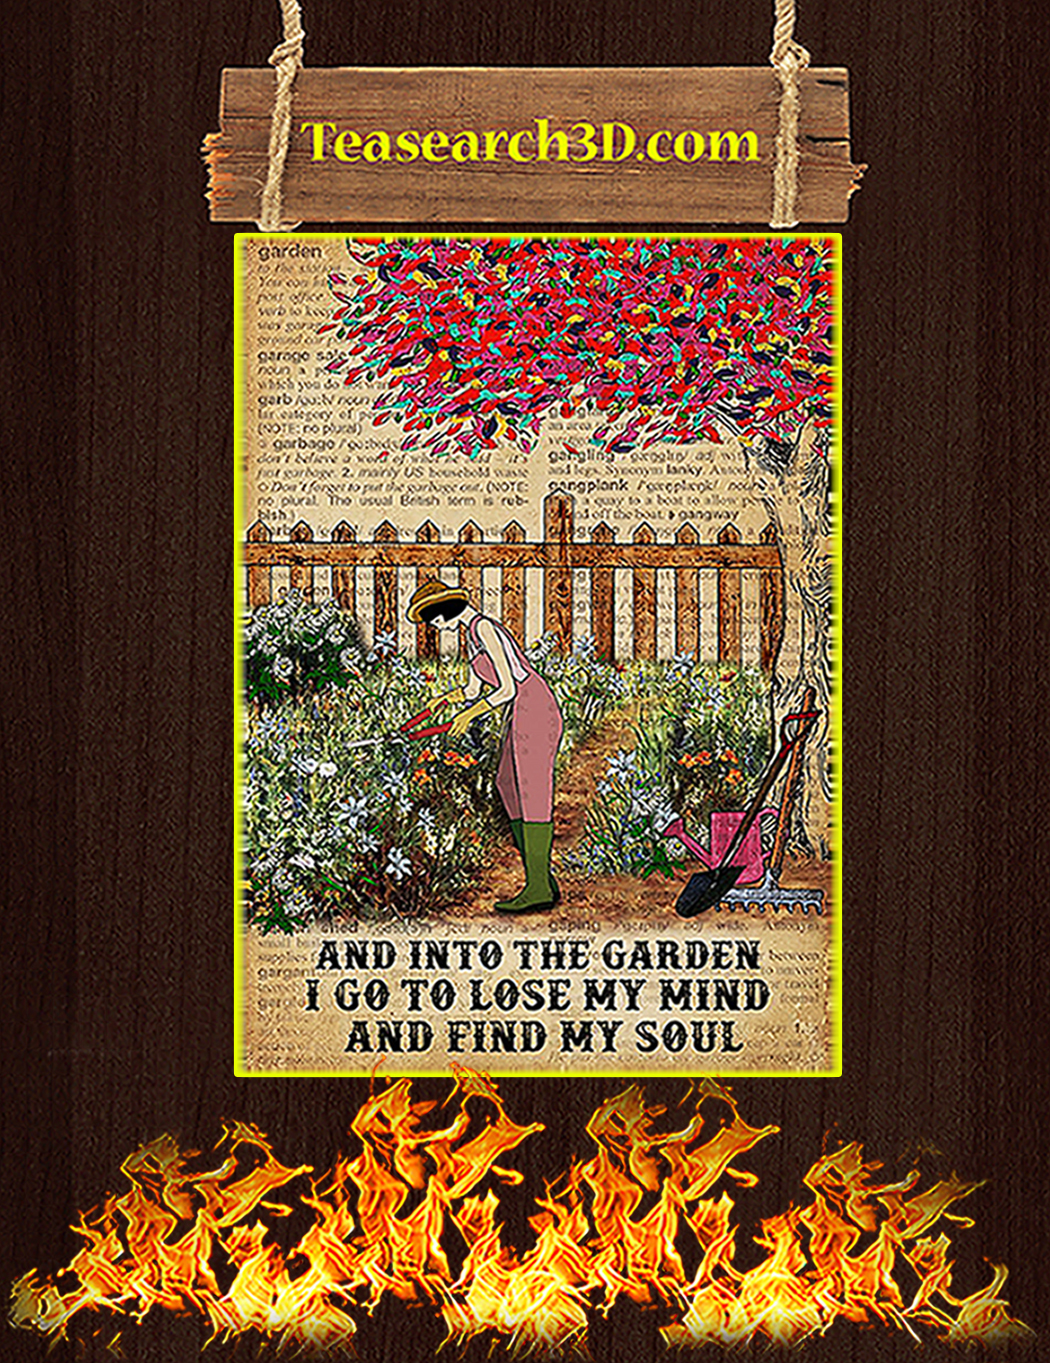 Dictionary And into the garden I go to lose my mind and find my soul poster A1